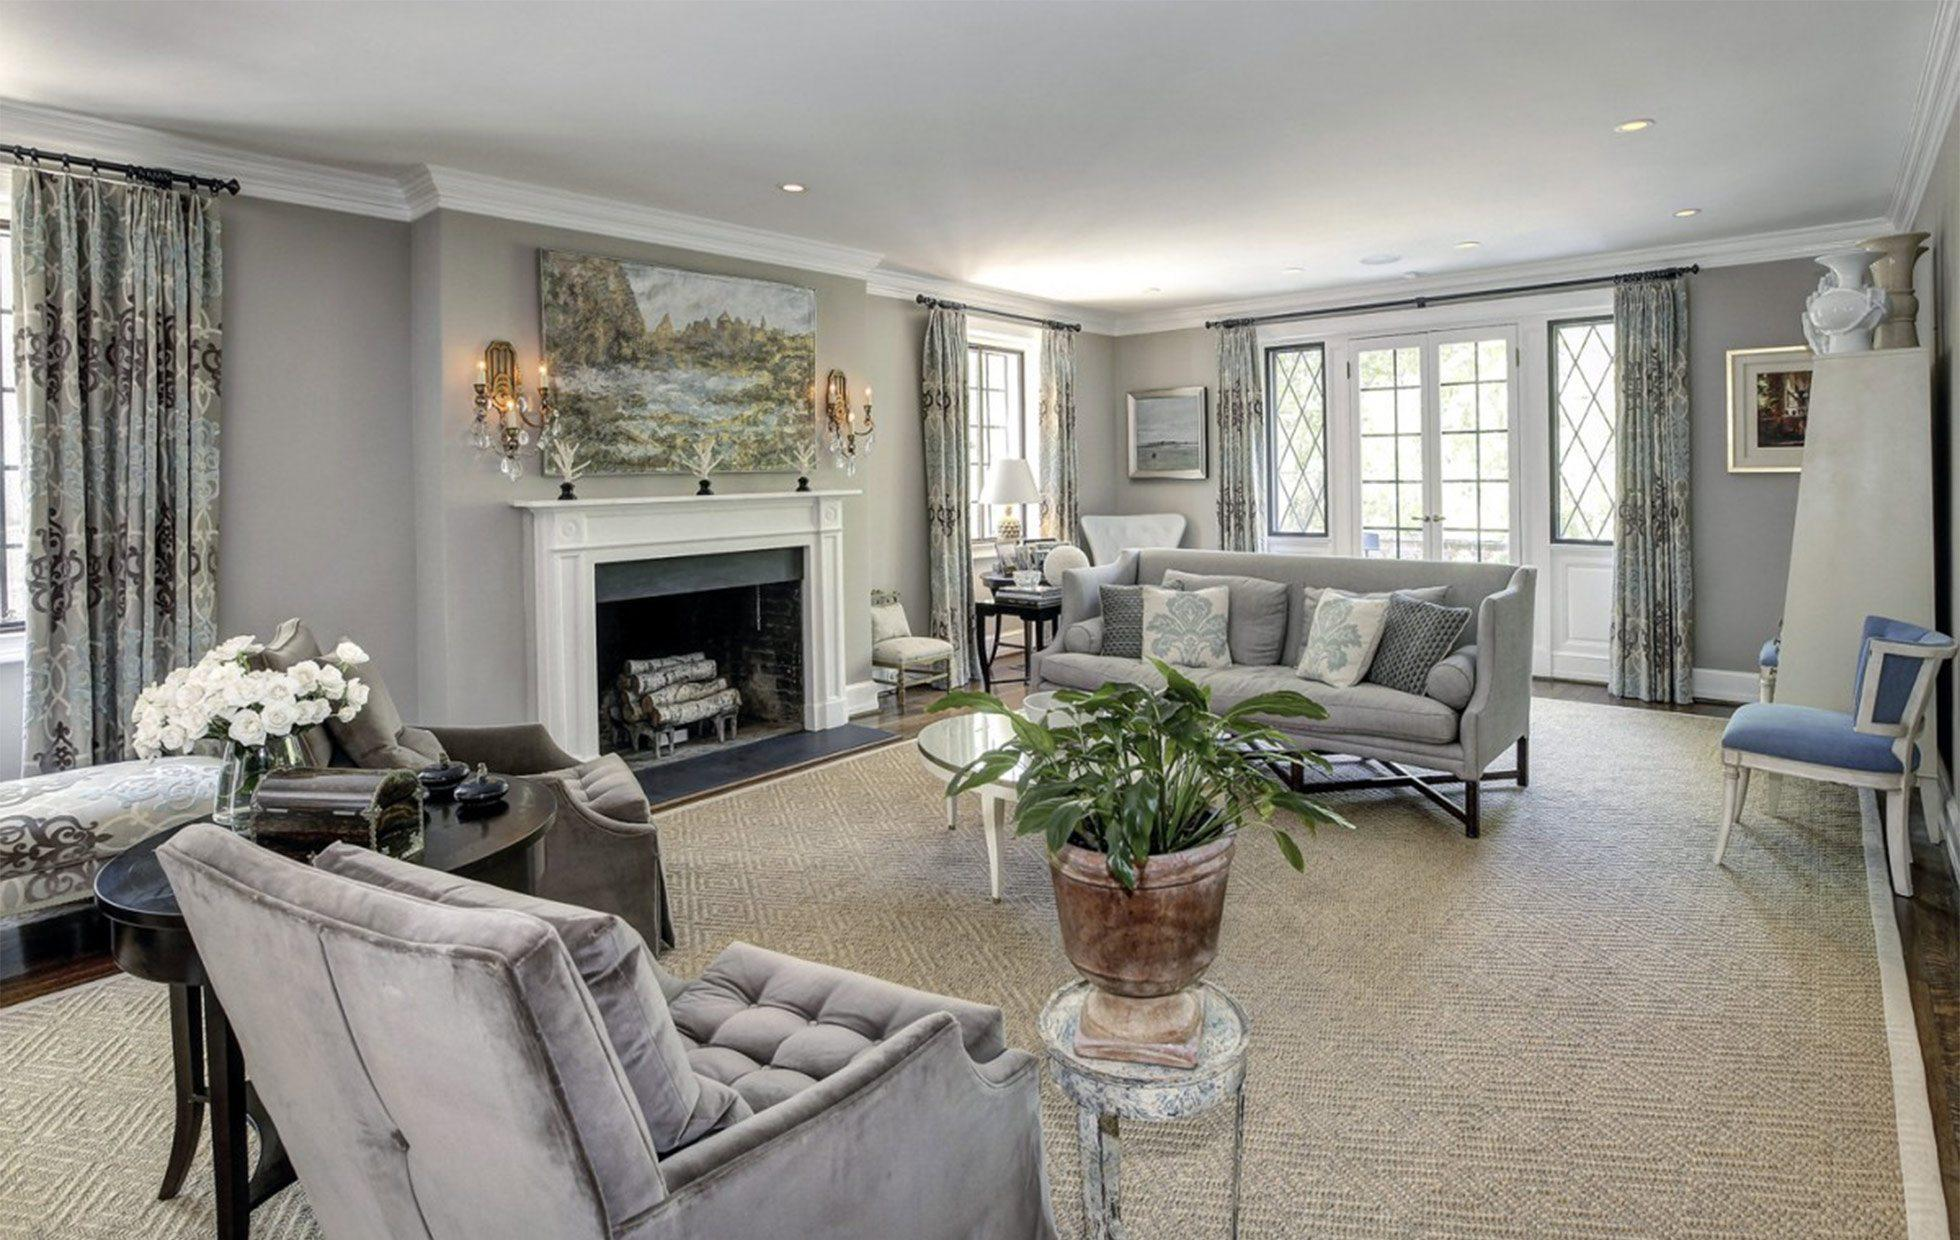 5882004af0ae52446-Belmont-Road-NW-Washington-DC-Obamas-New-Home-Living-Room-1200x788